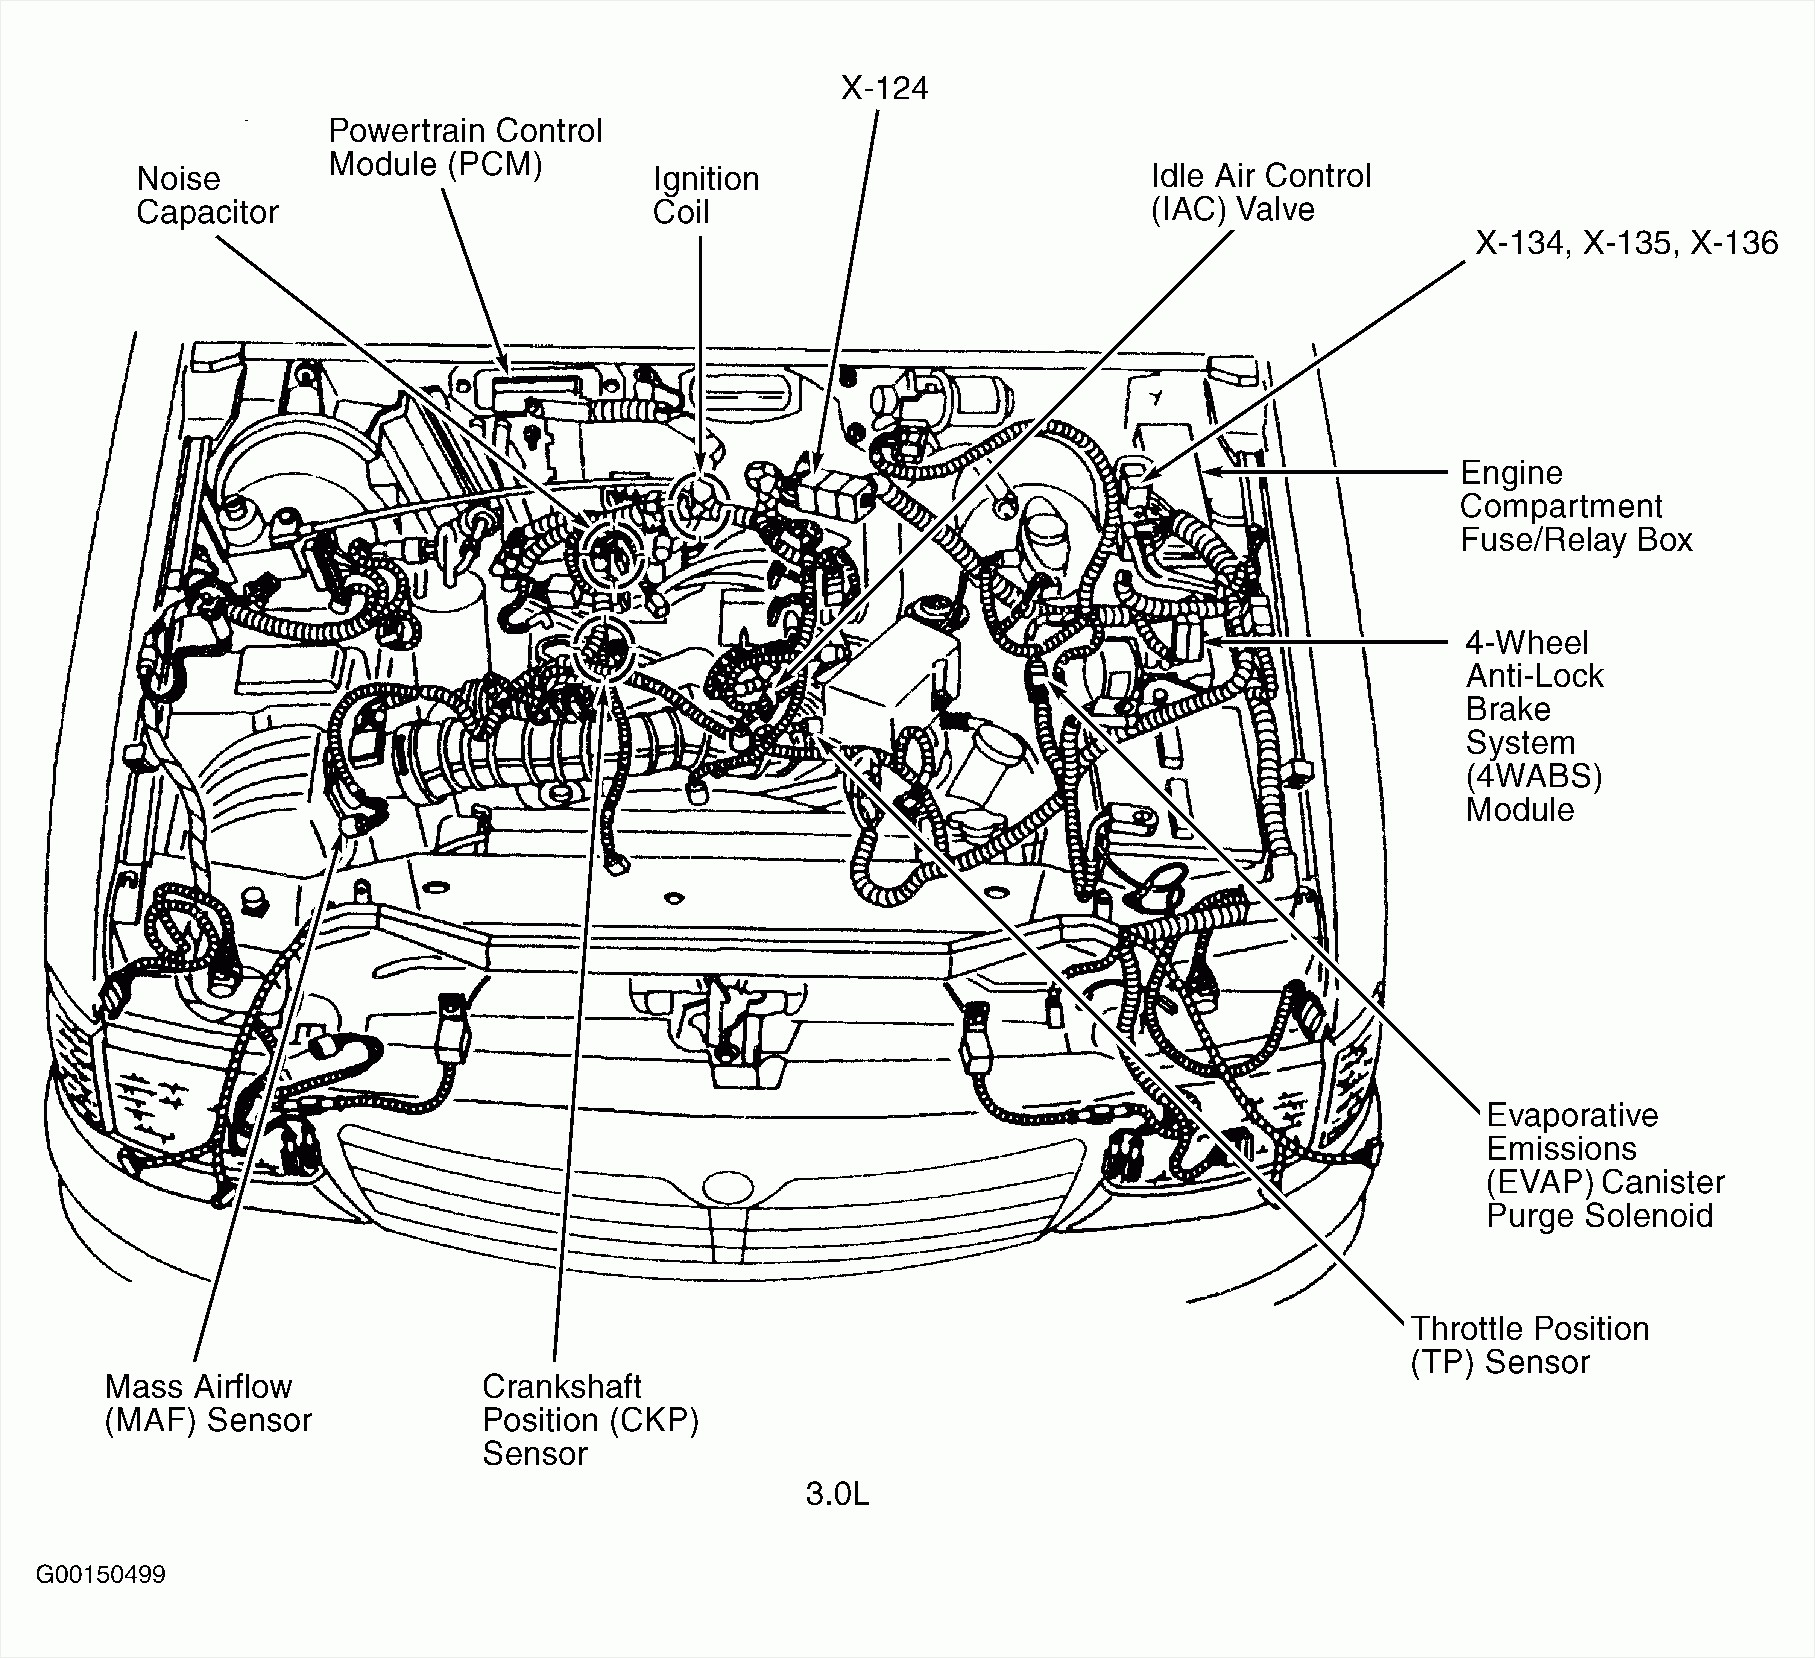 2004 Ford Explorer Fuse Diagram Schematics Wiring Diagrams Guide Toyota 3 0 V6 Engine 2001 Interior